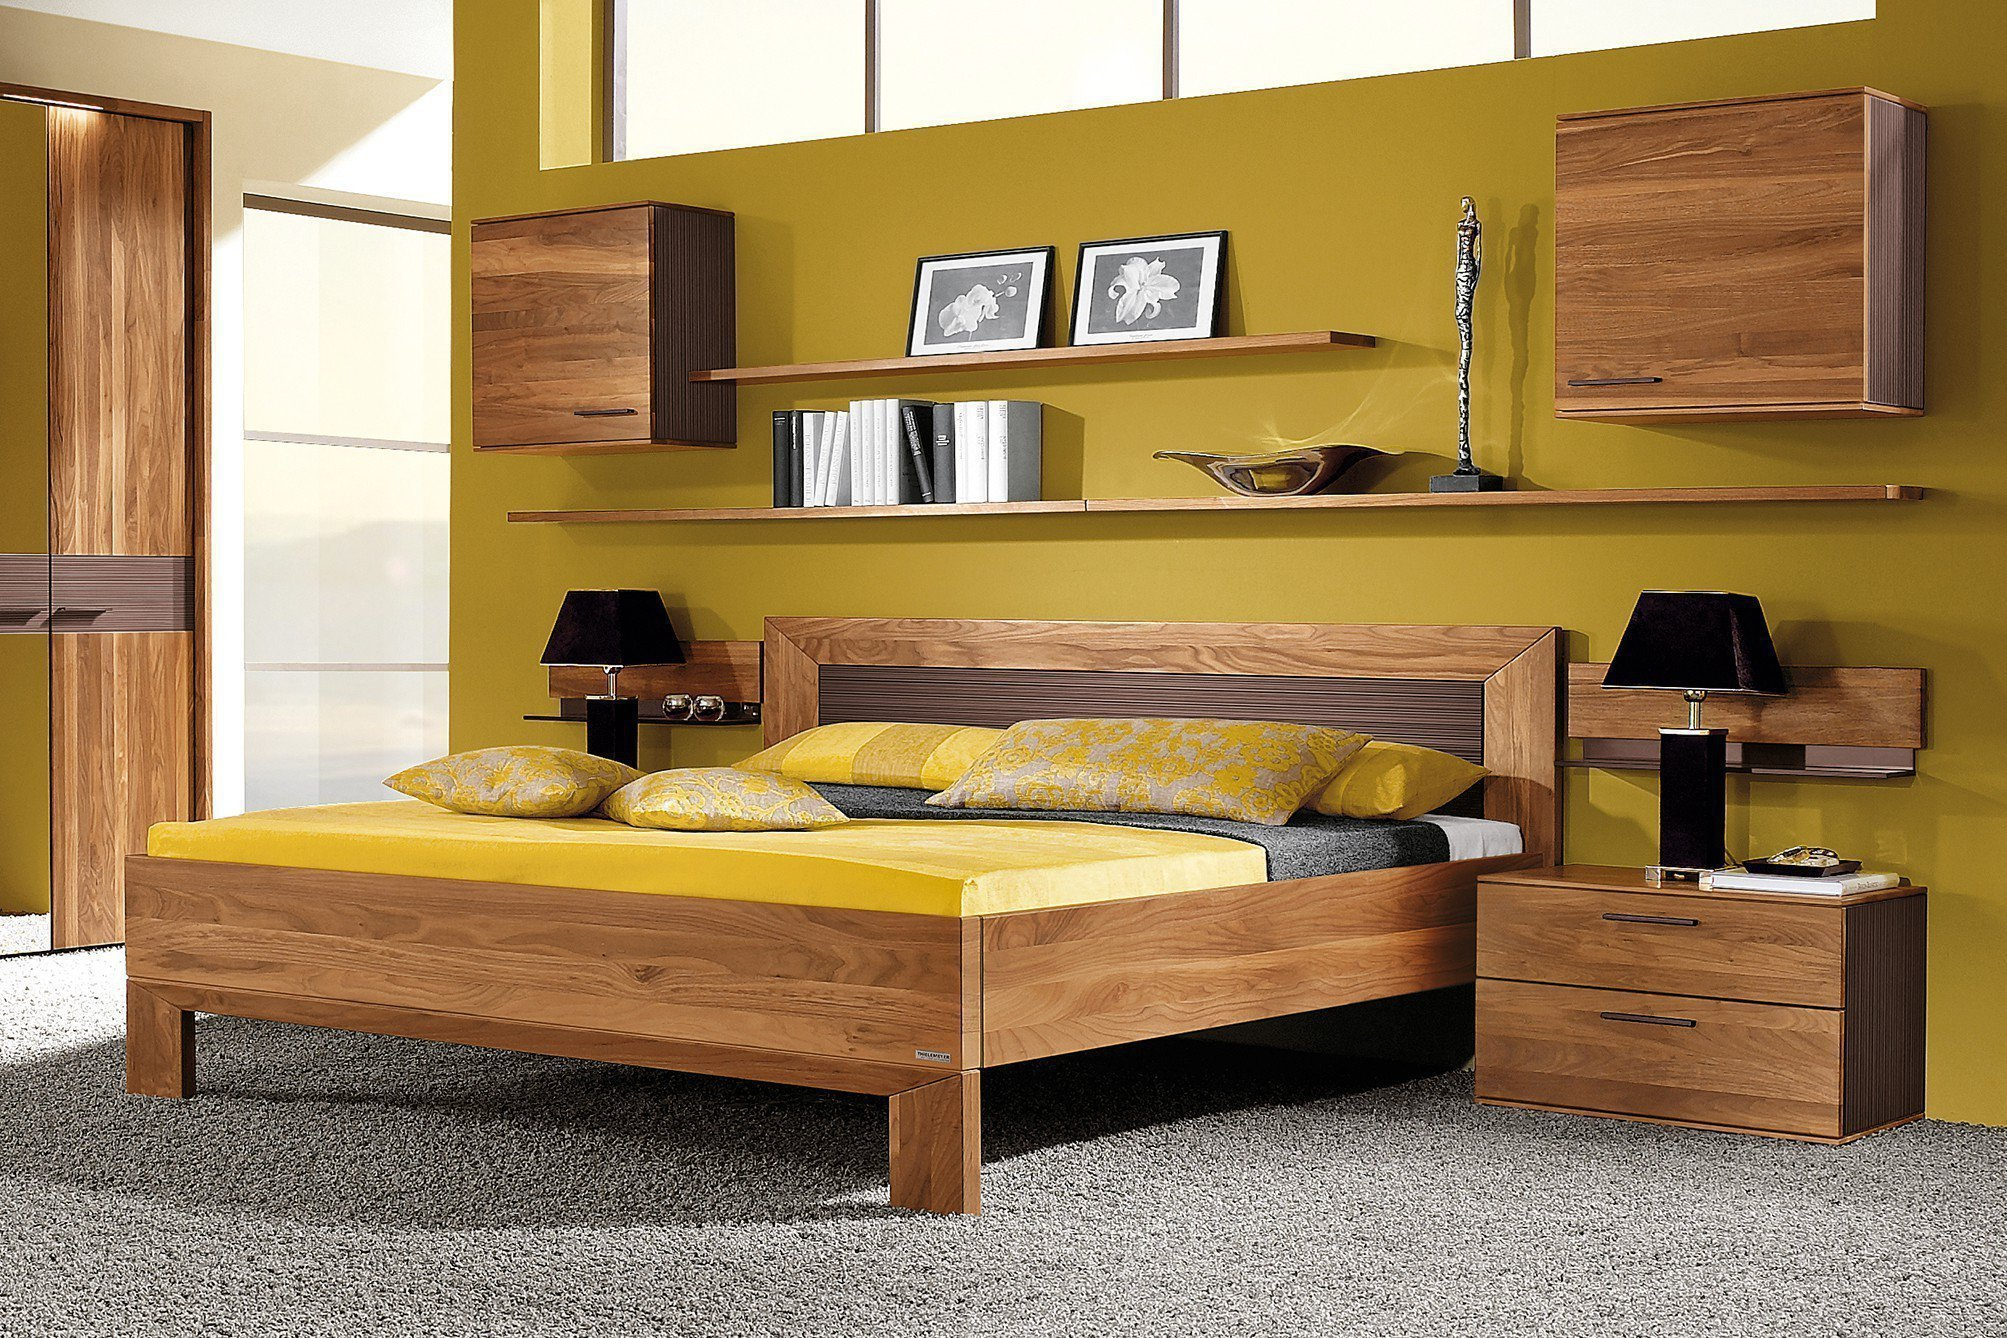 doppelbett 180x200 cm mali von thielemeyer m bel letz ihr online shop. Black Bedroom Furniture Sets. Home Design Ideas